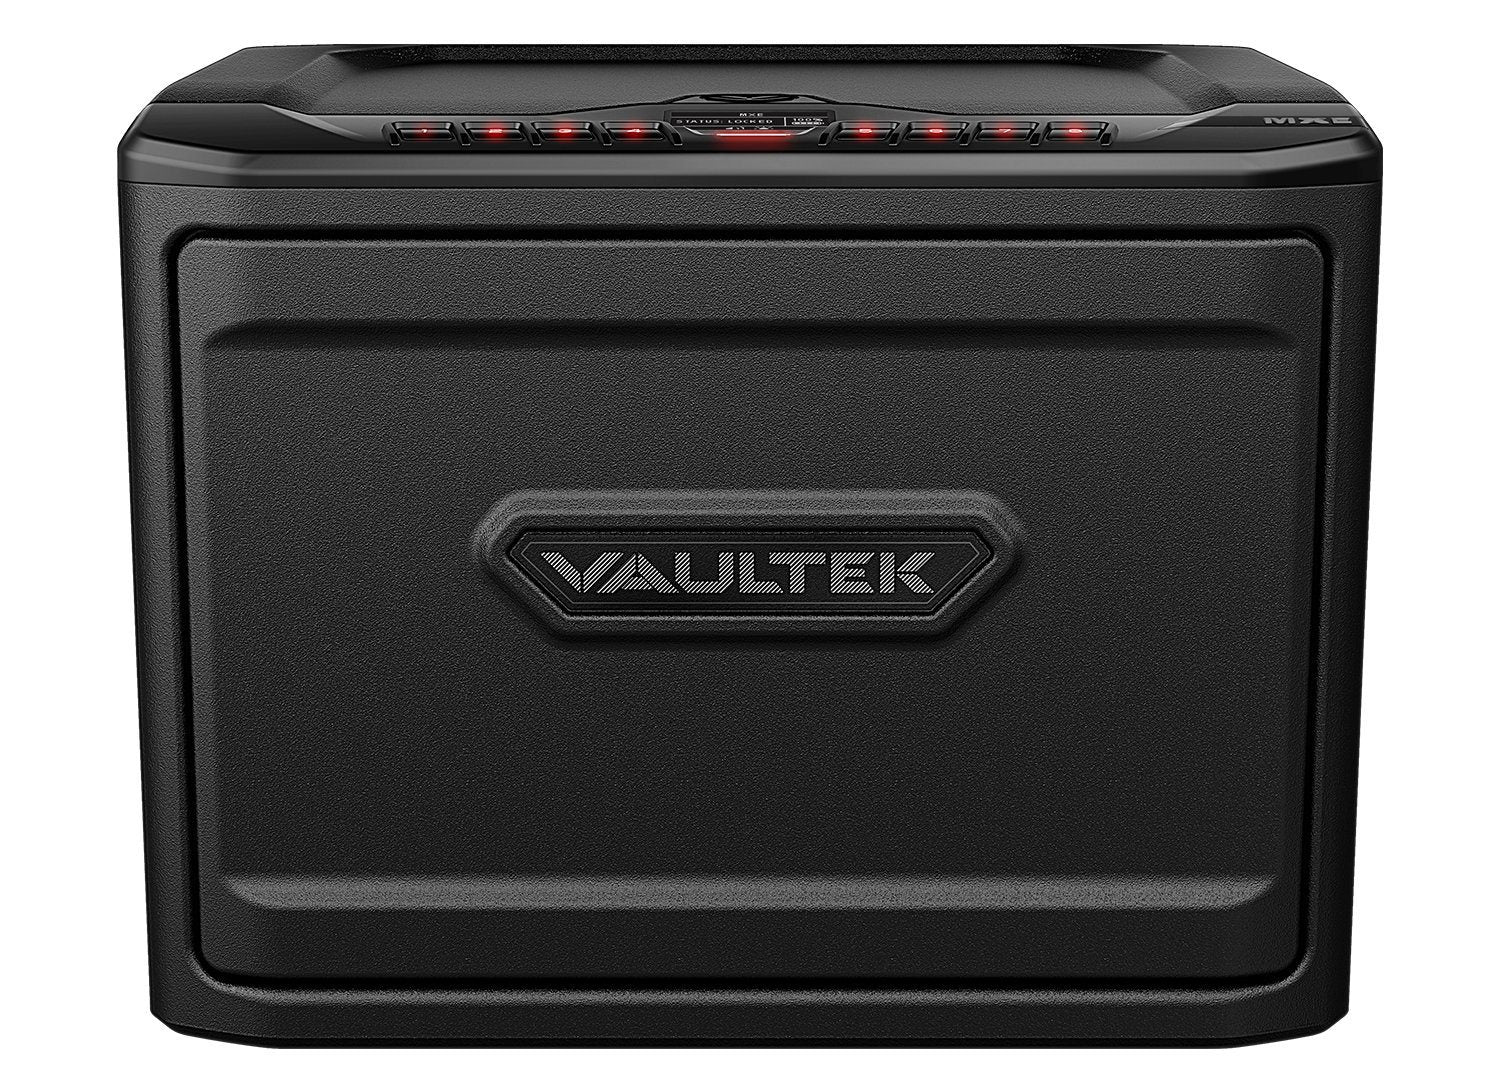 Handgun And Pistol Safes - Vaultek MXE Essential Series High Capacity Rugged Pistol Safe